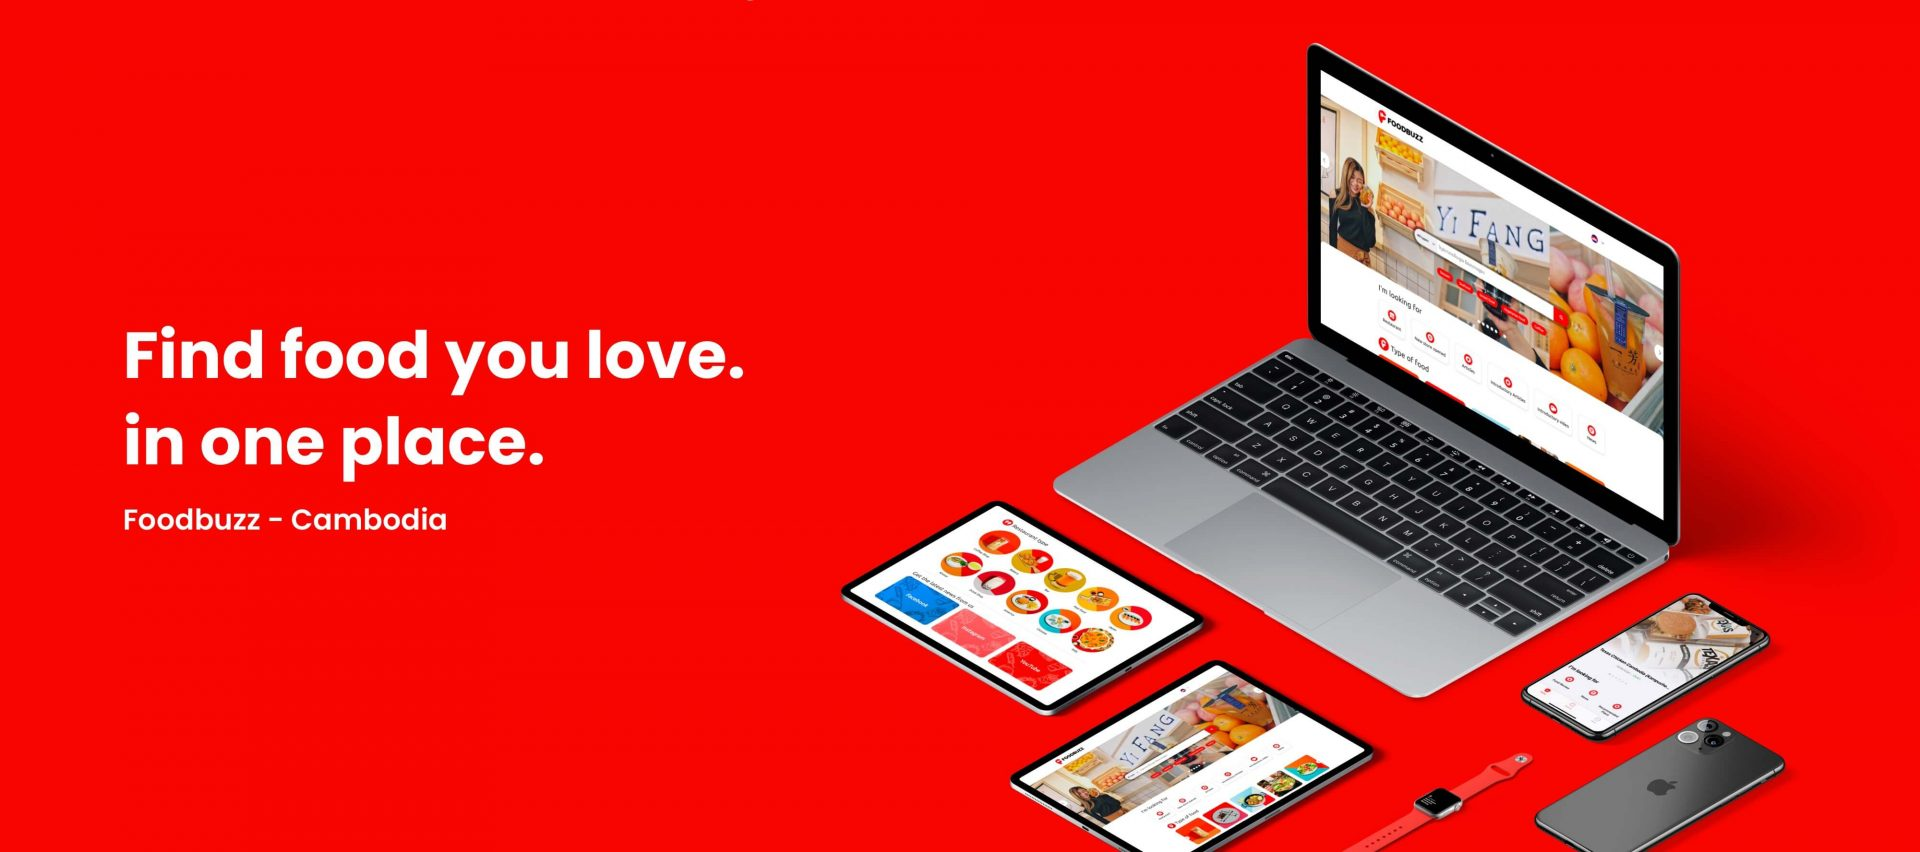 Find food you love in one place.